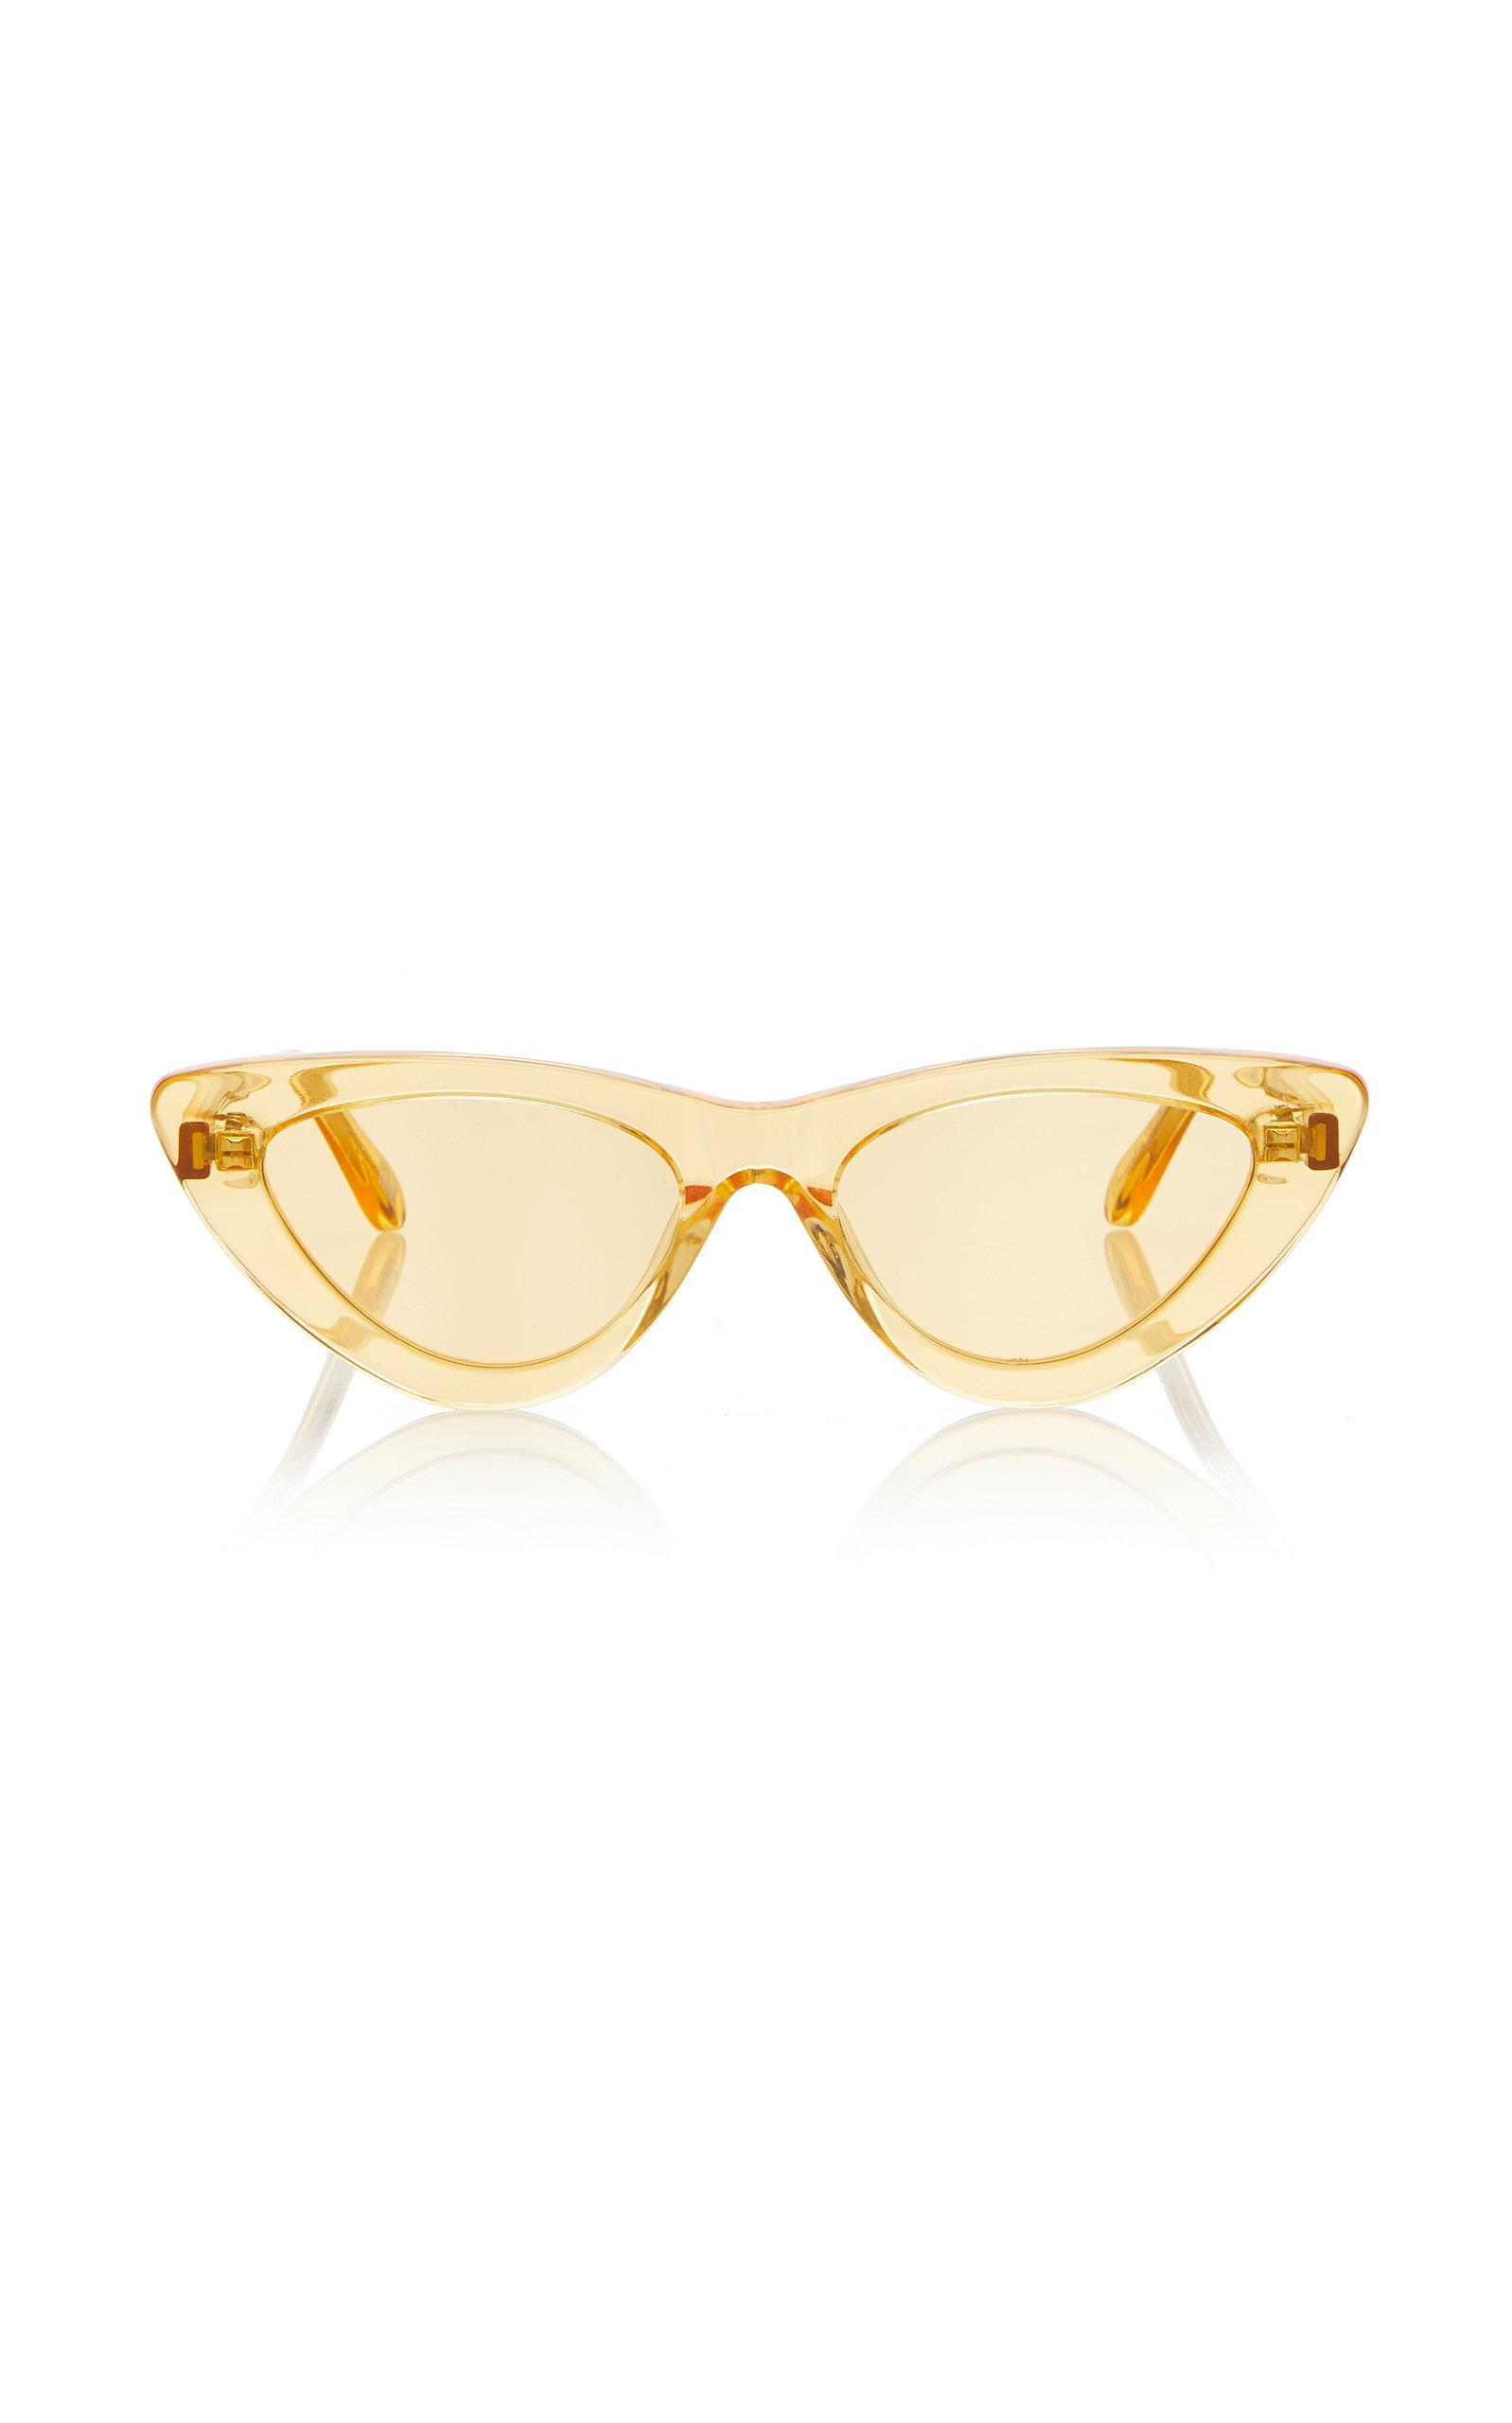 b76ef3f26 Chimi M'o Exclusive 006 See Through Sunglasses in Yellow - Lyst